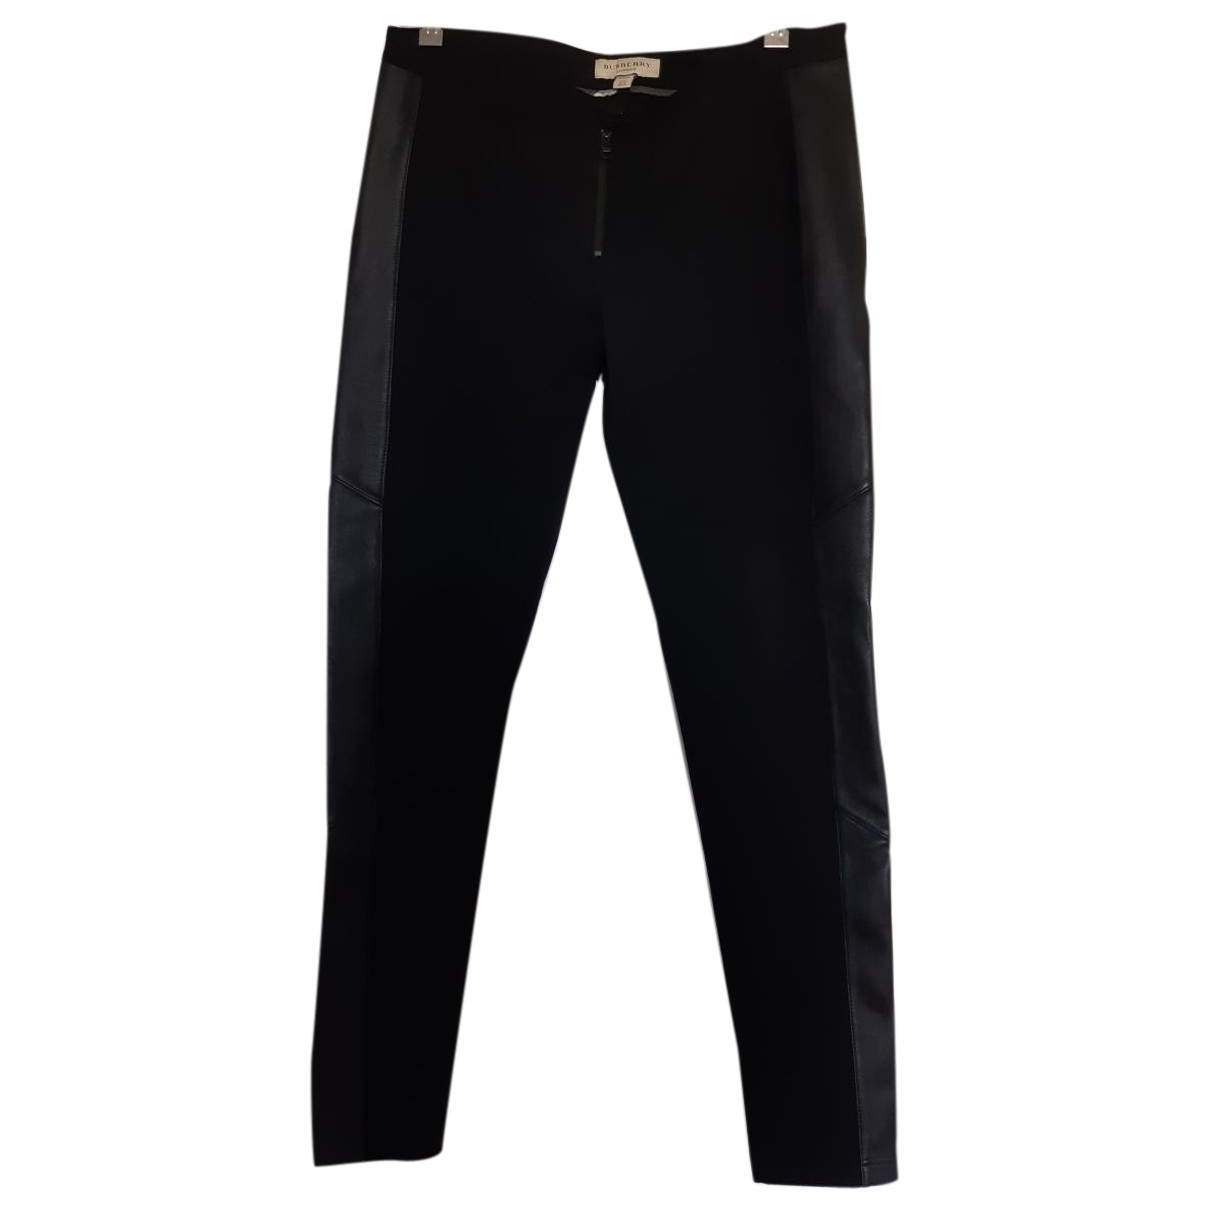 Burberry \N Black Trousers for Women 14 UK